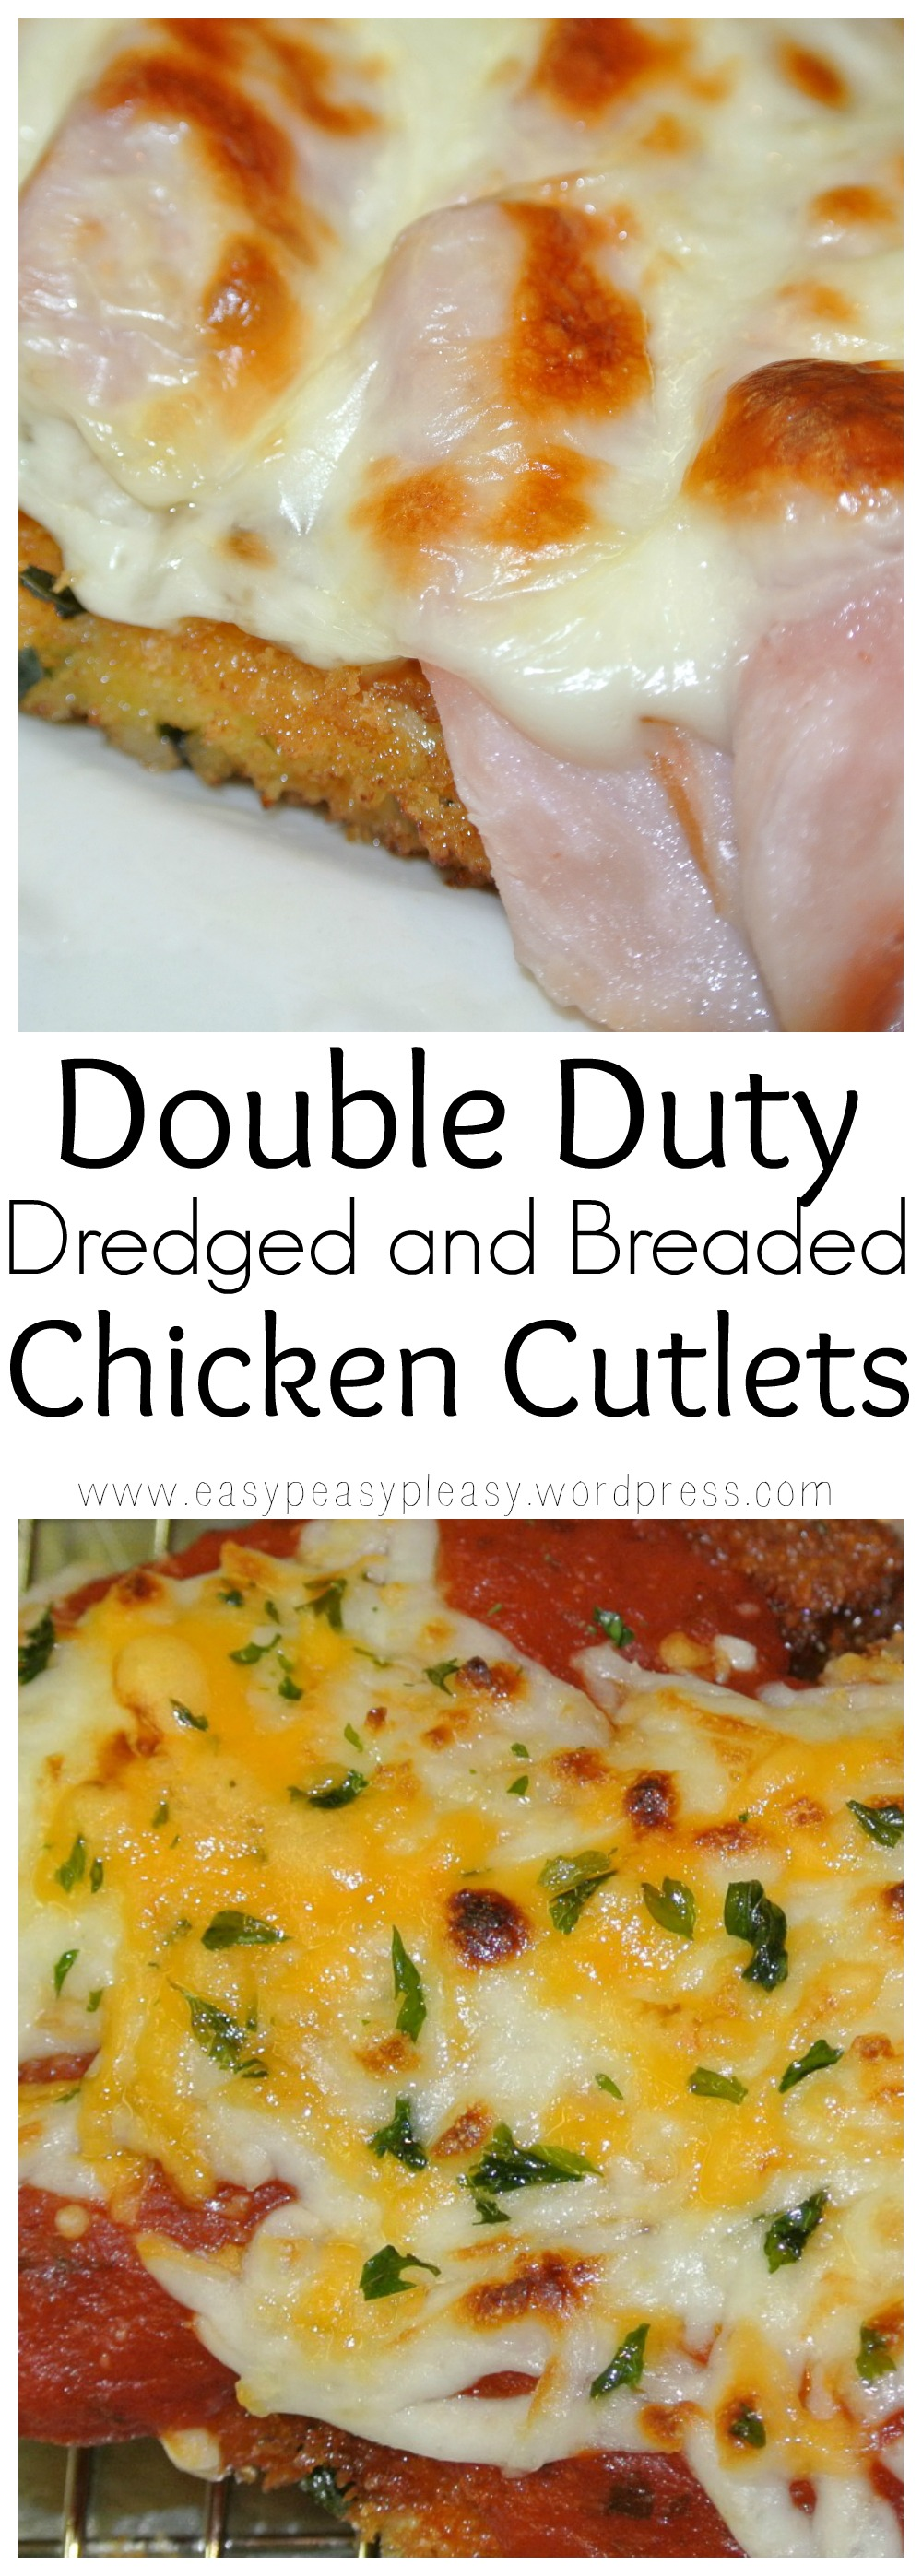 Double Duty Dredged and Breaded Chicken Cutlets Recipes at www.easypeasypleasy.wordpress.com